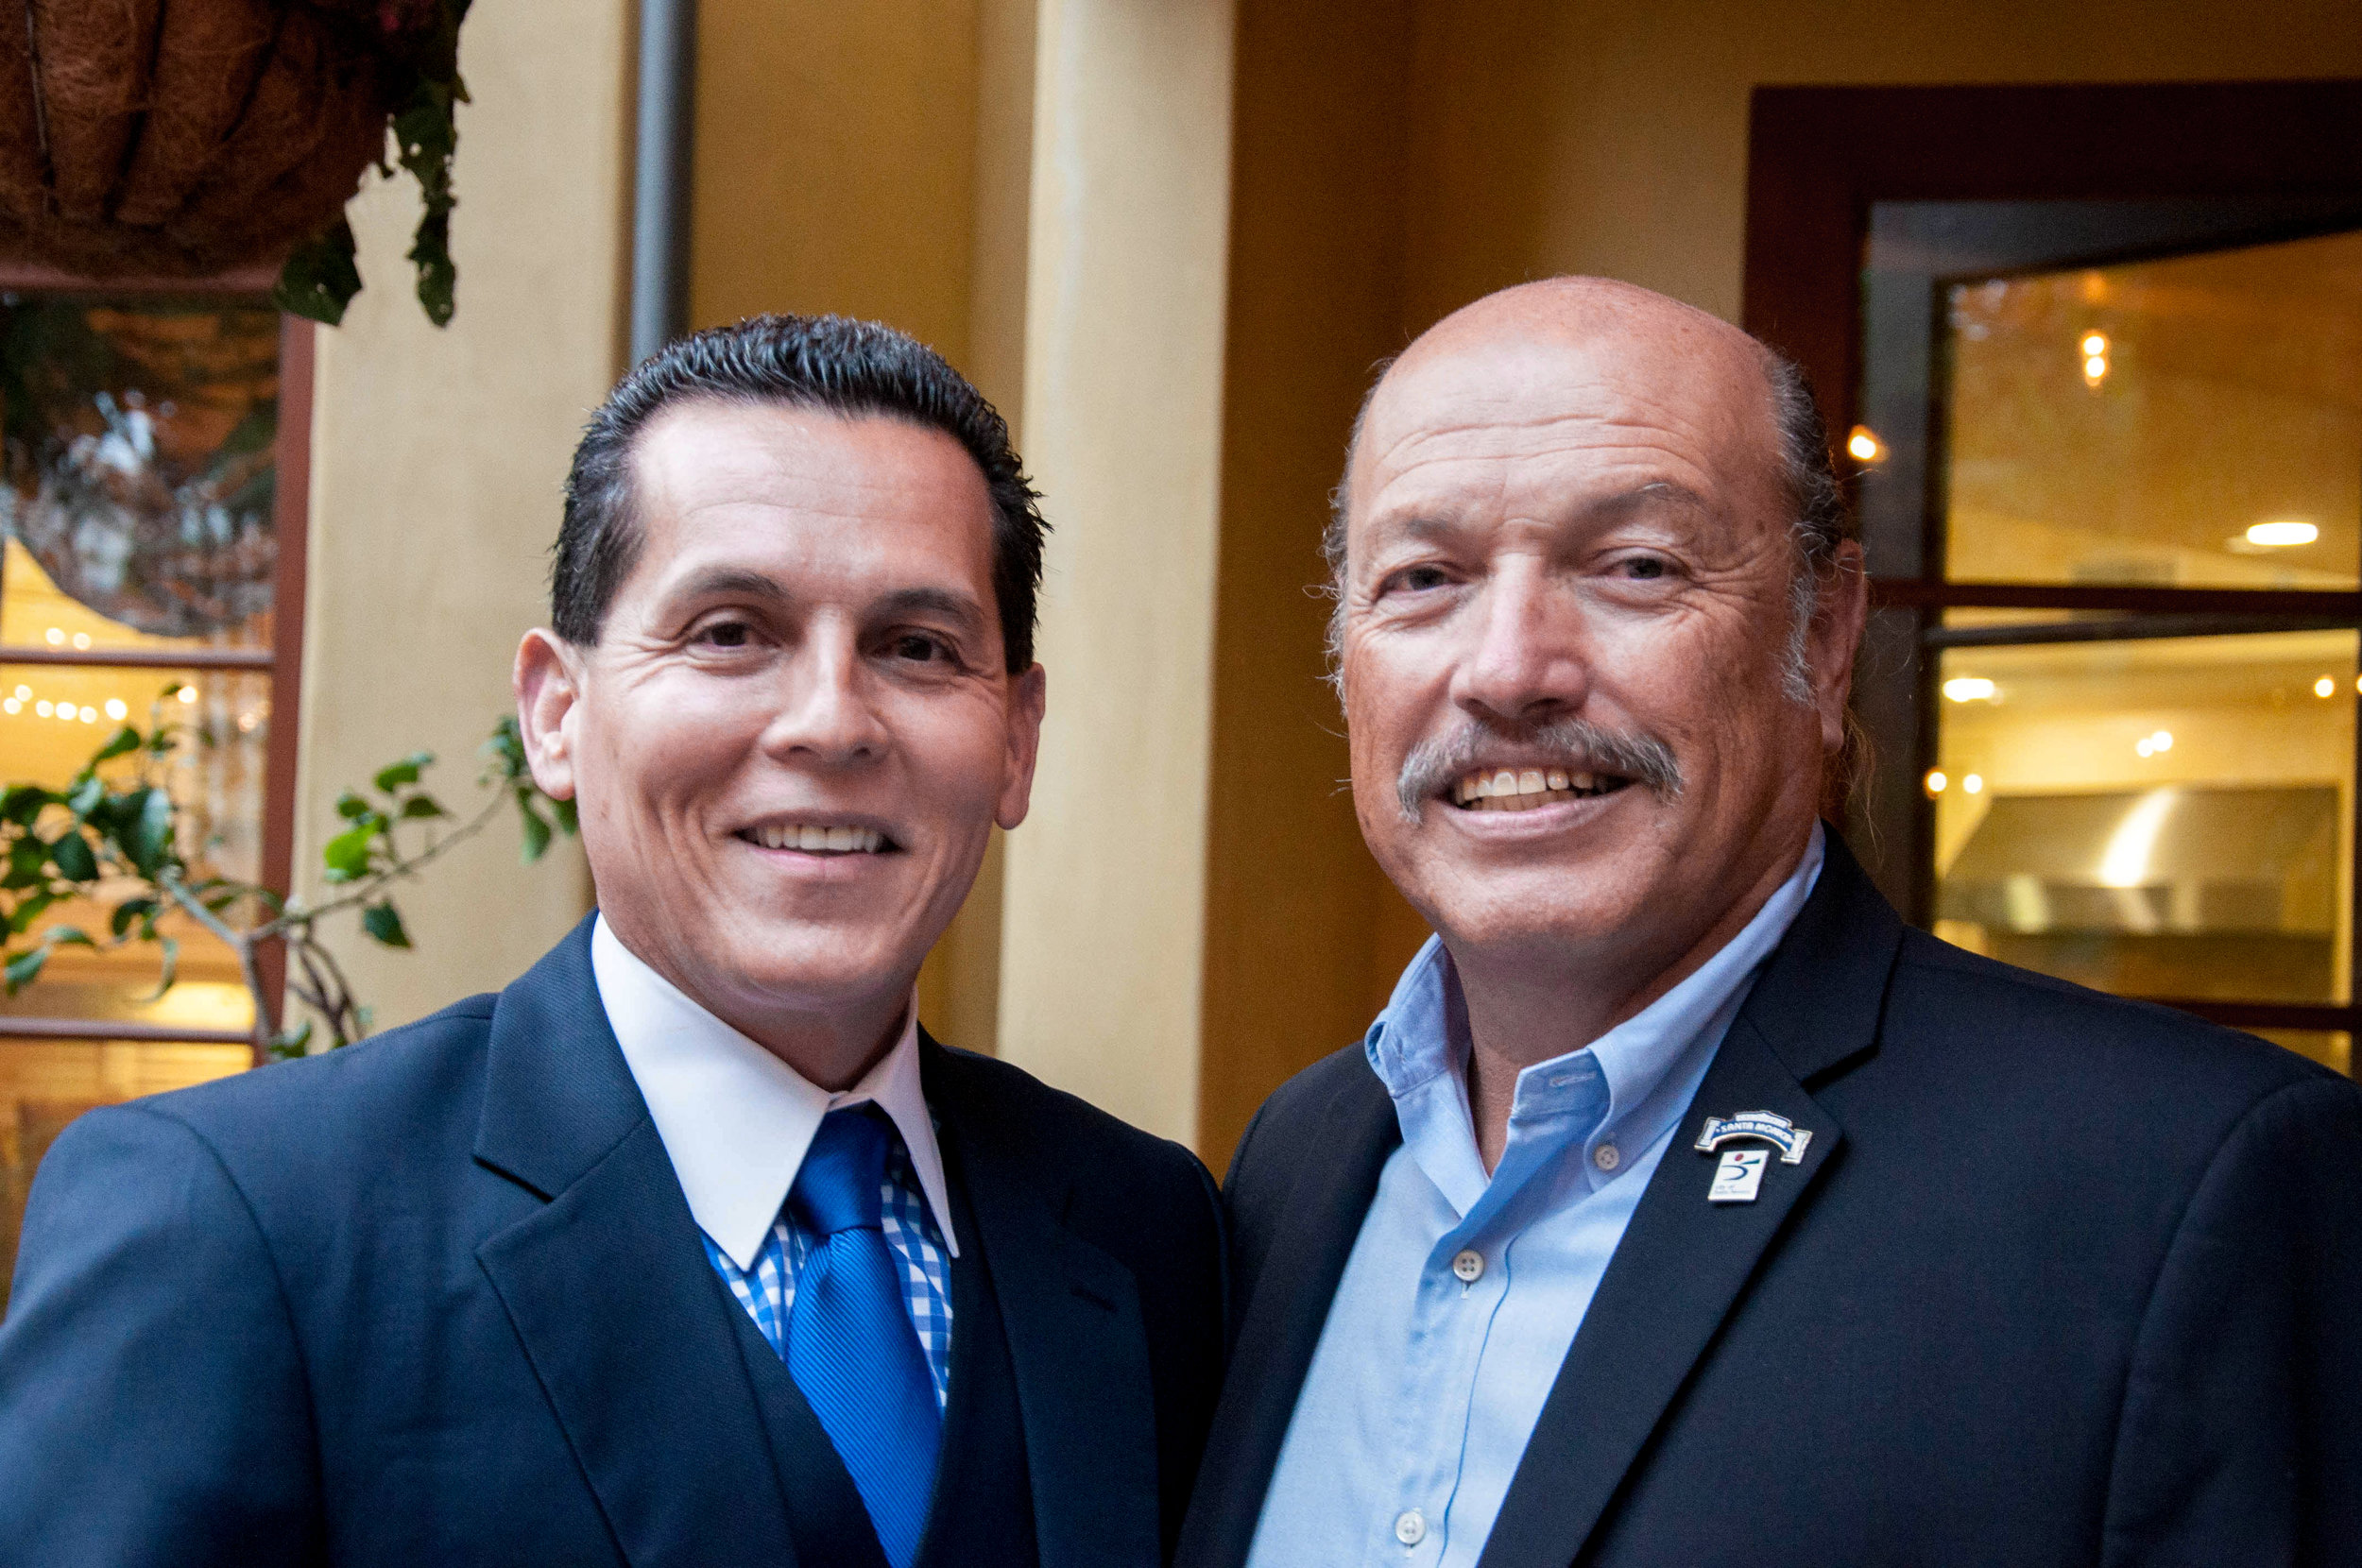 MABA President Felipe Plascencia and Tony at a past fundraiser.